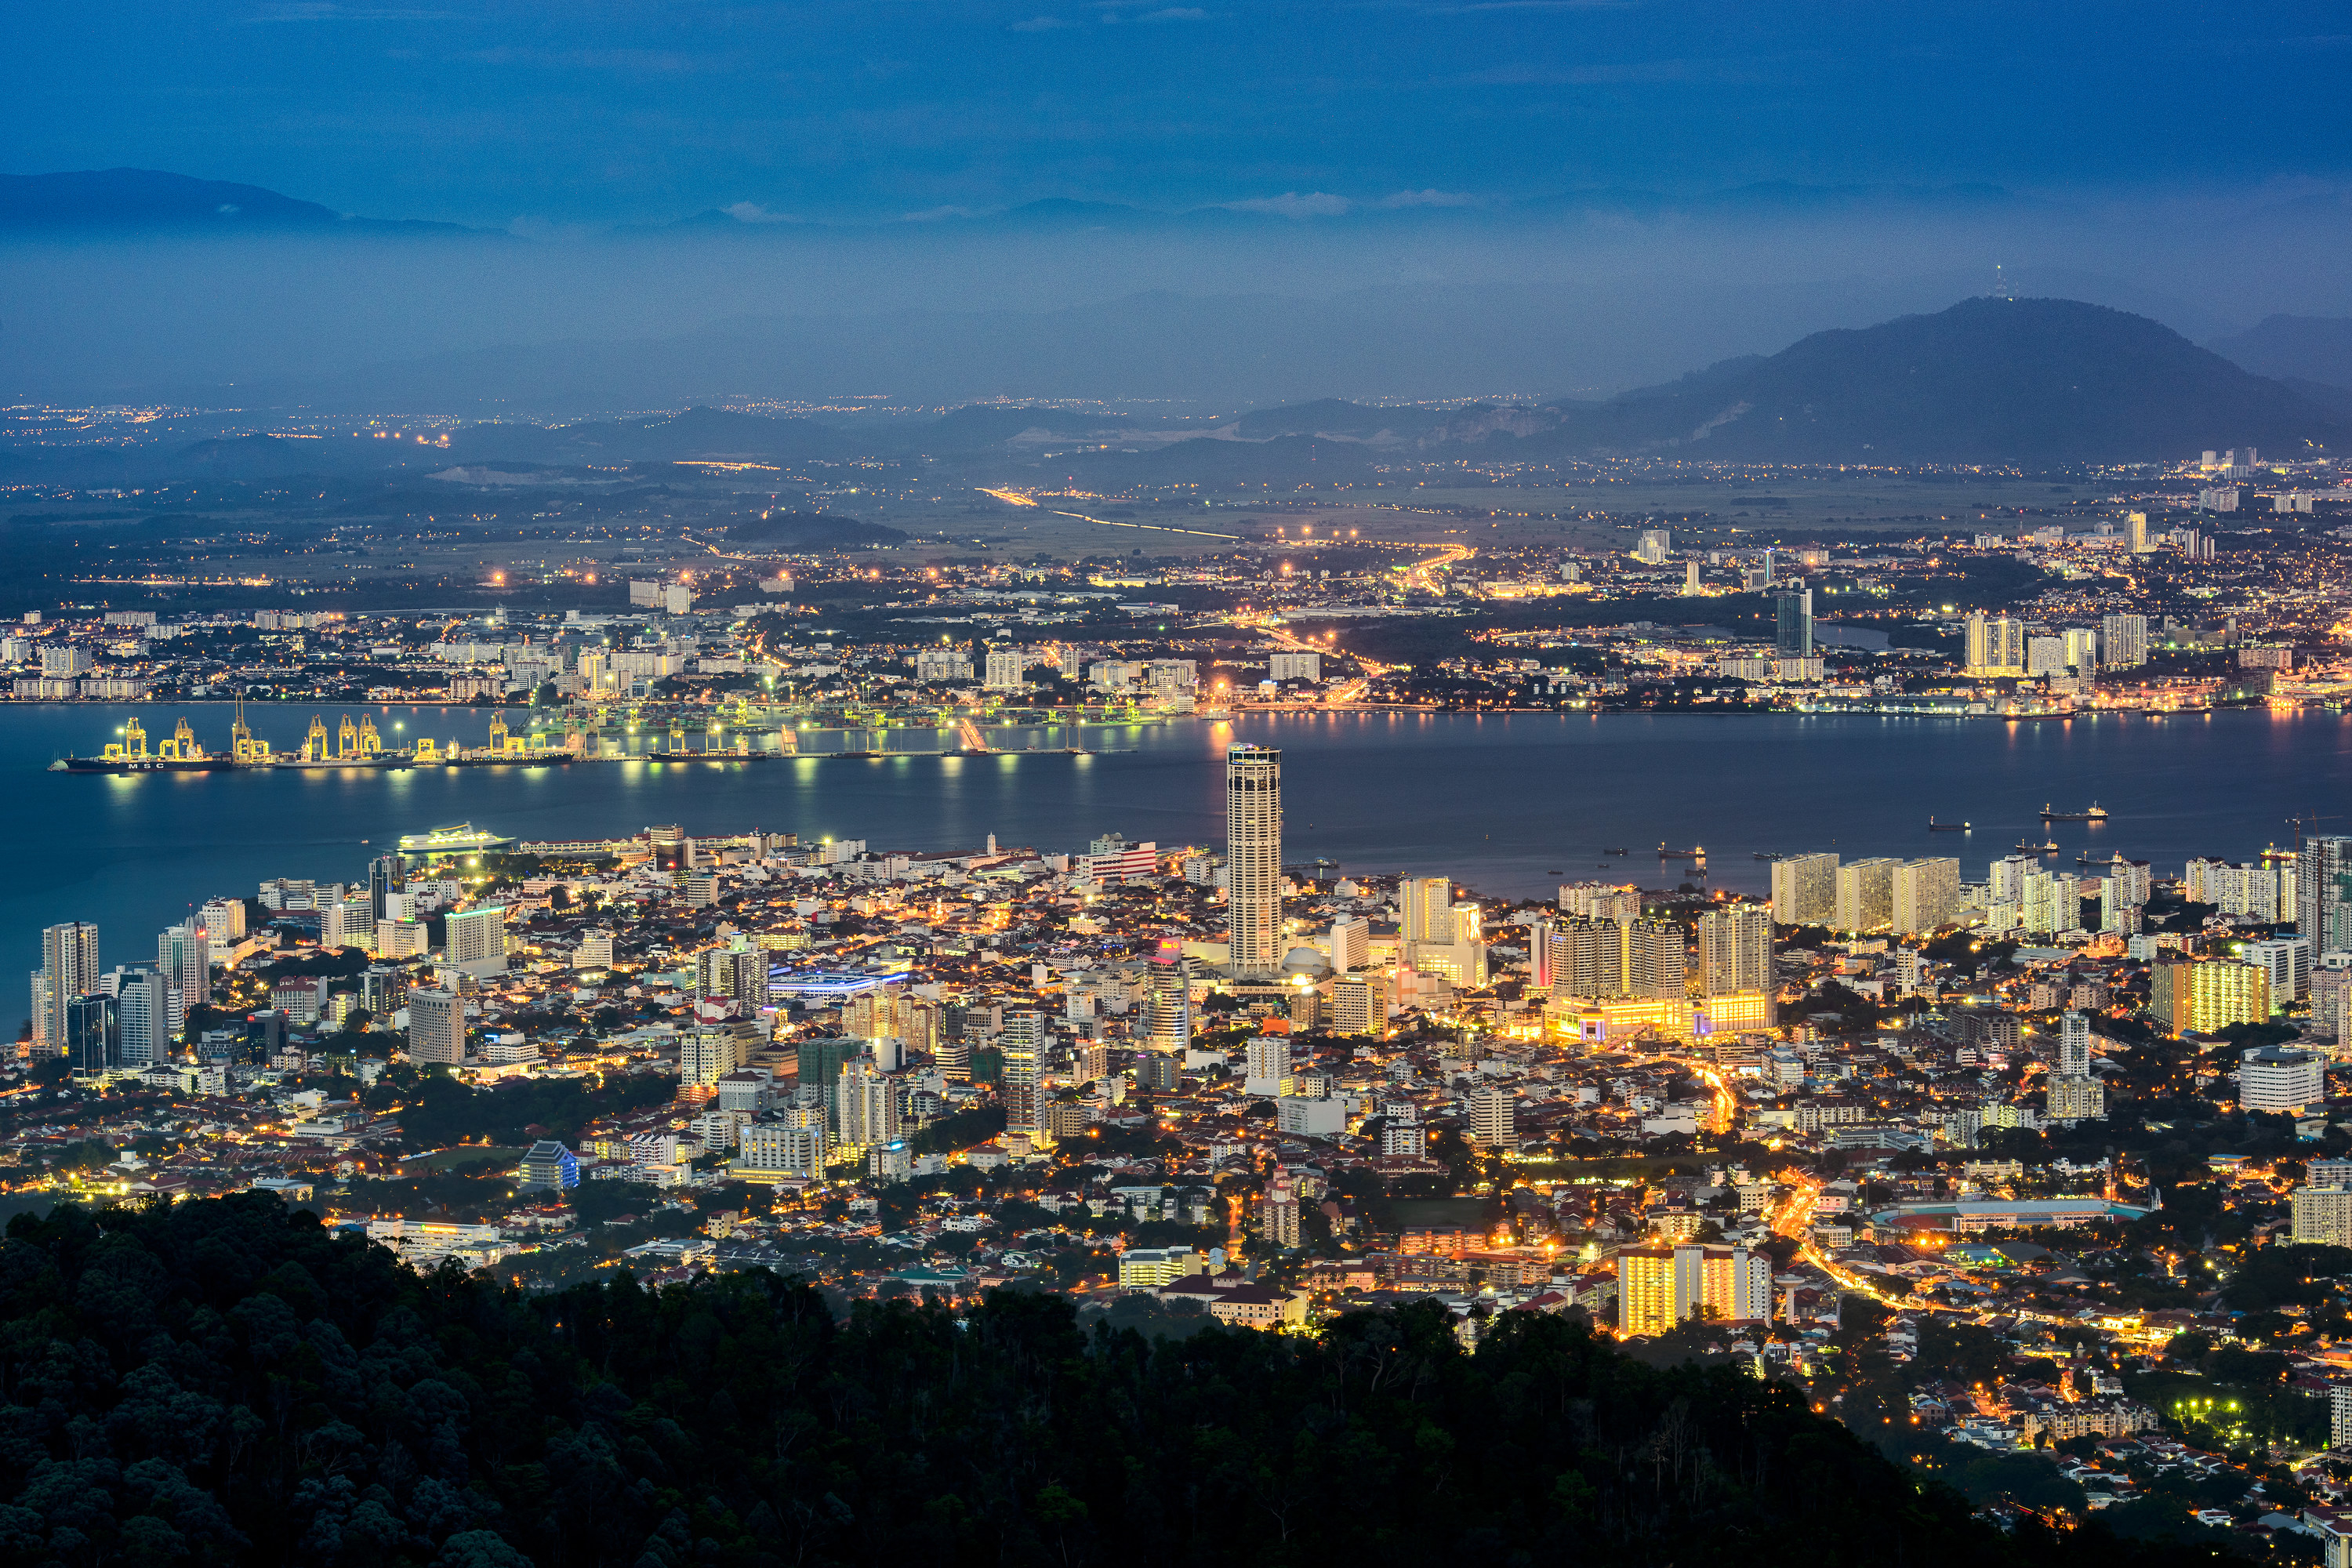 A city view from Penang Hill